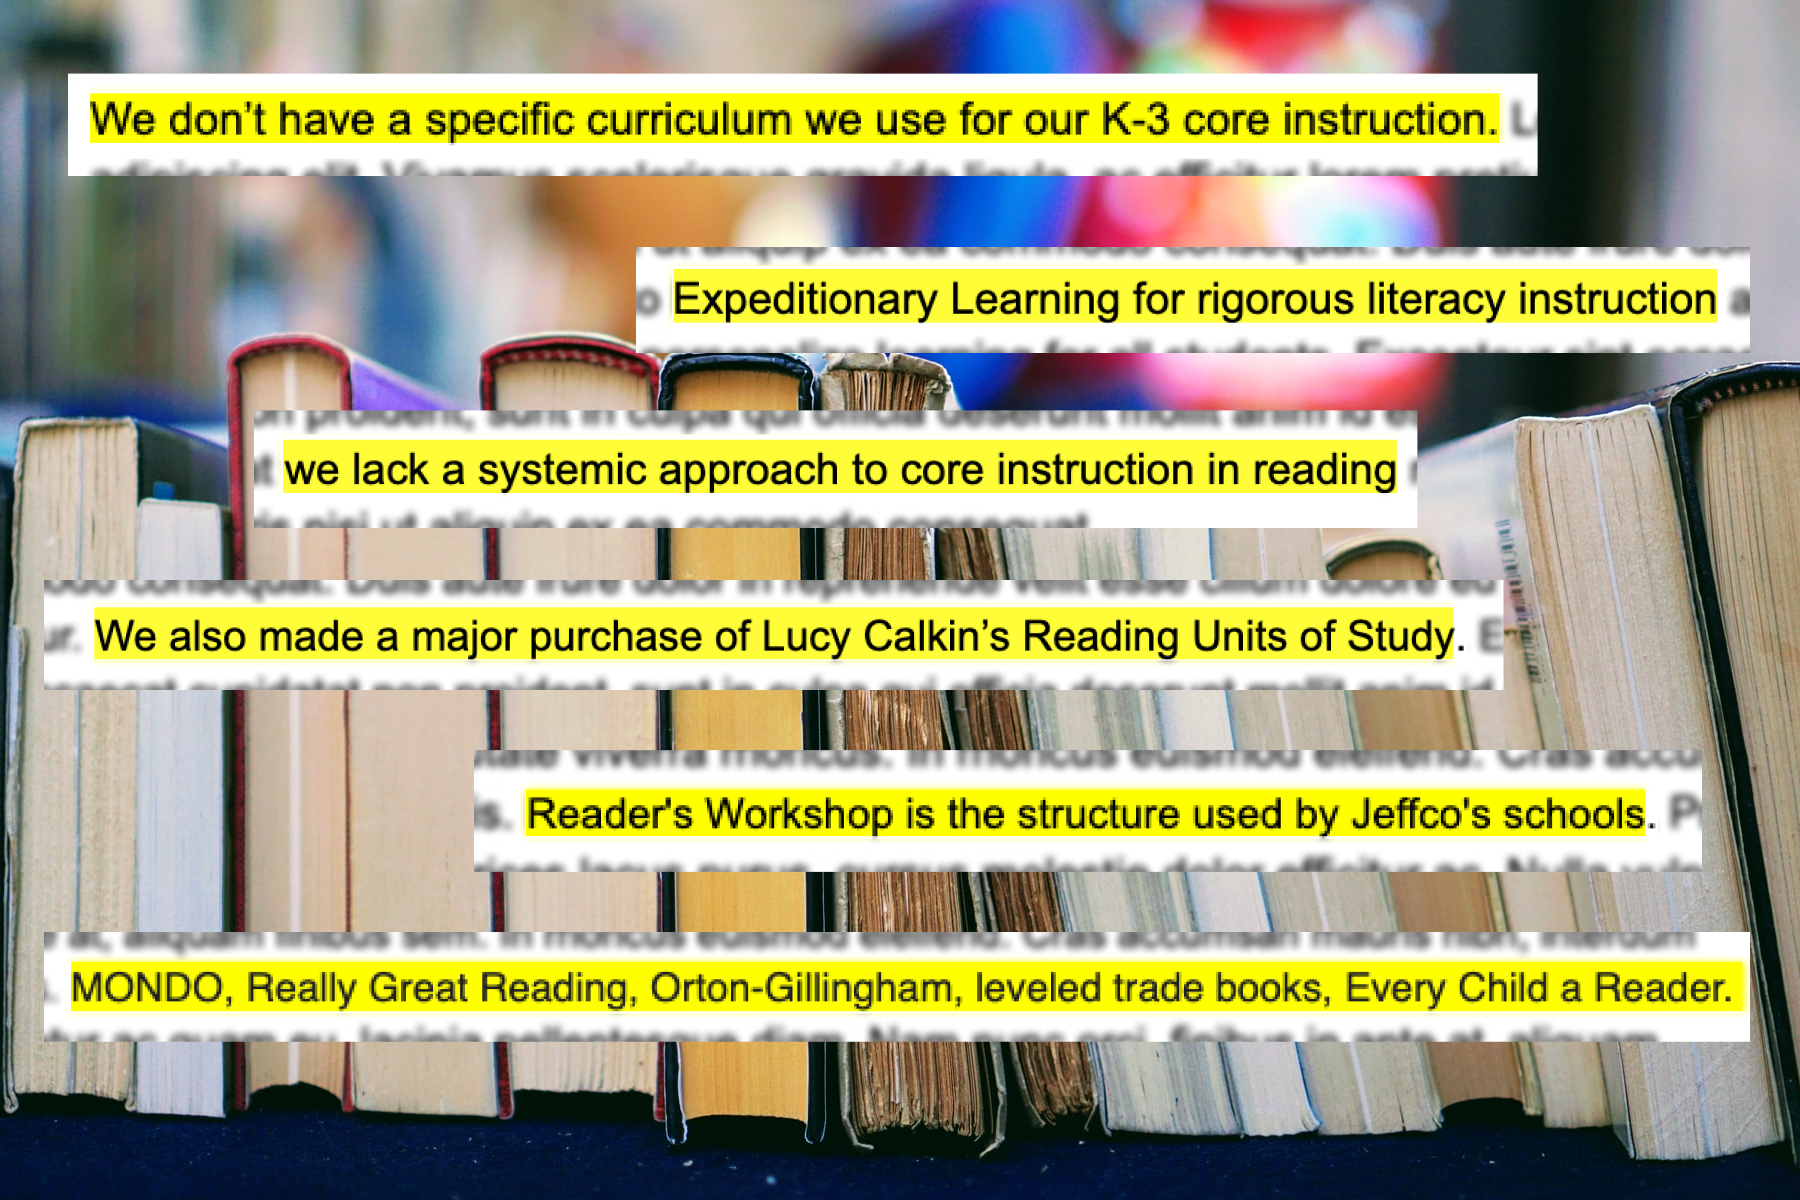 On a background of books, snippets show Jeffco principal responses about their core reading curriculum.